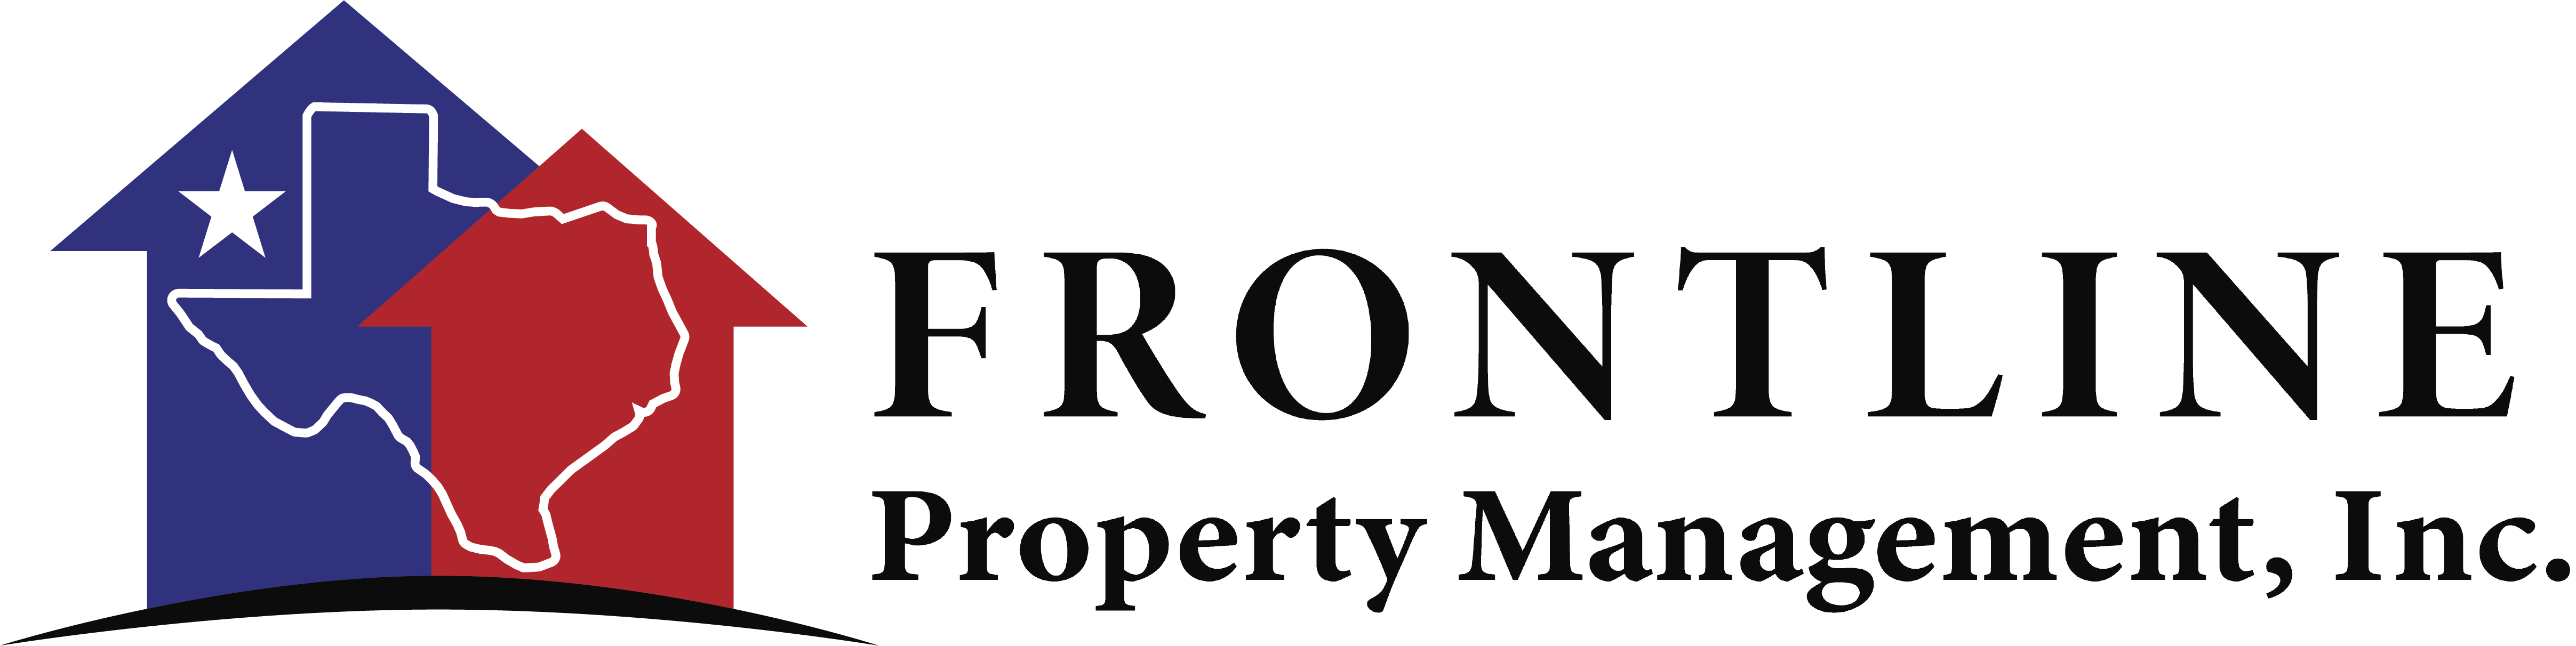 Frontline Property Management, Inc.